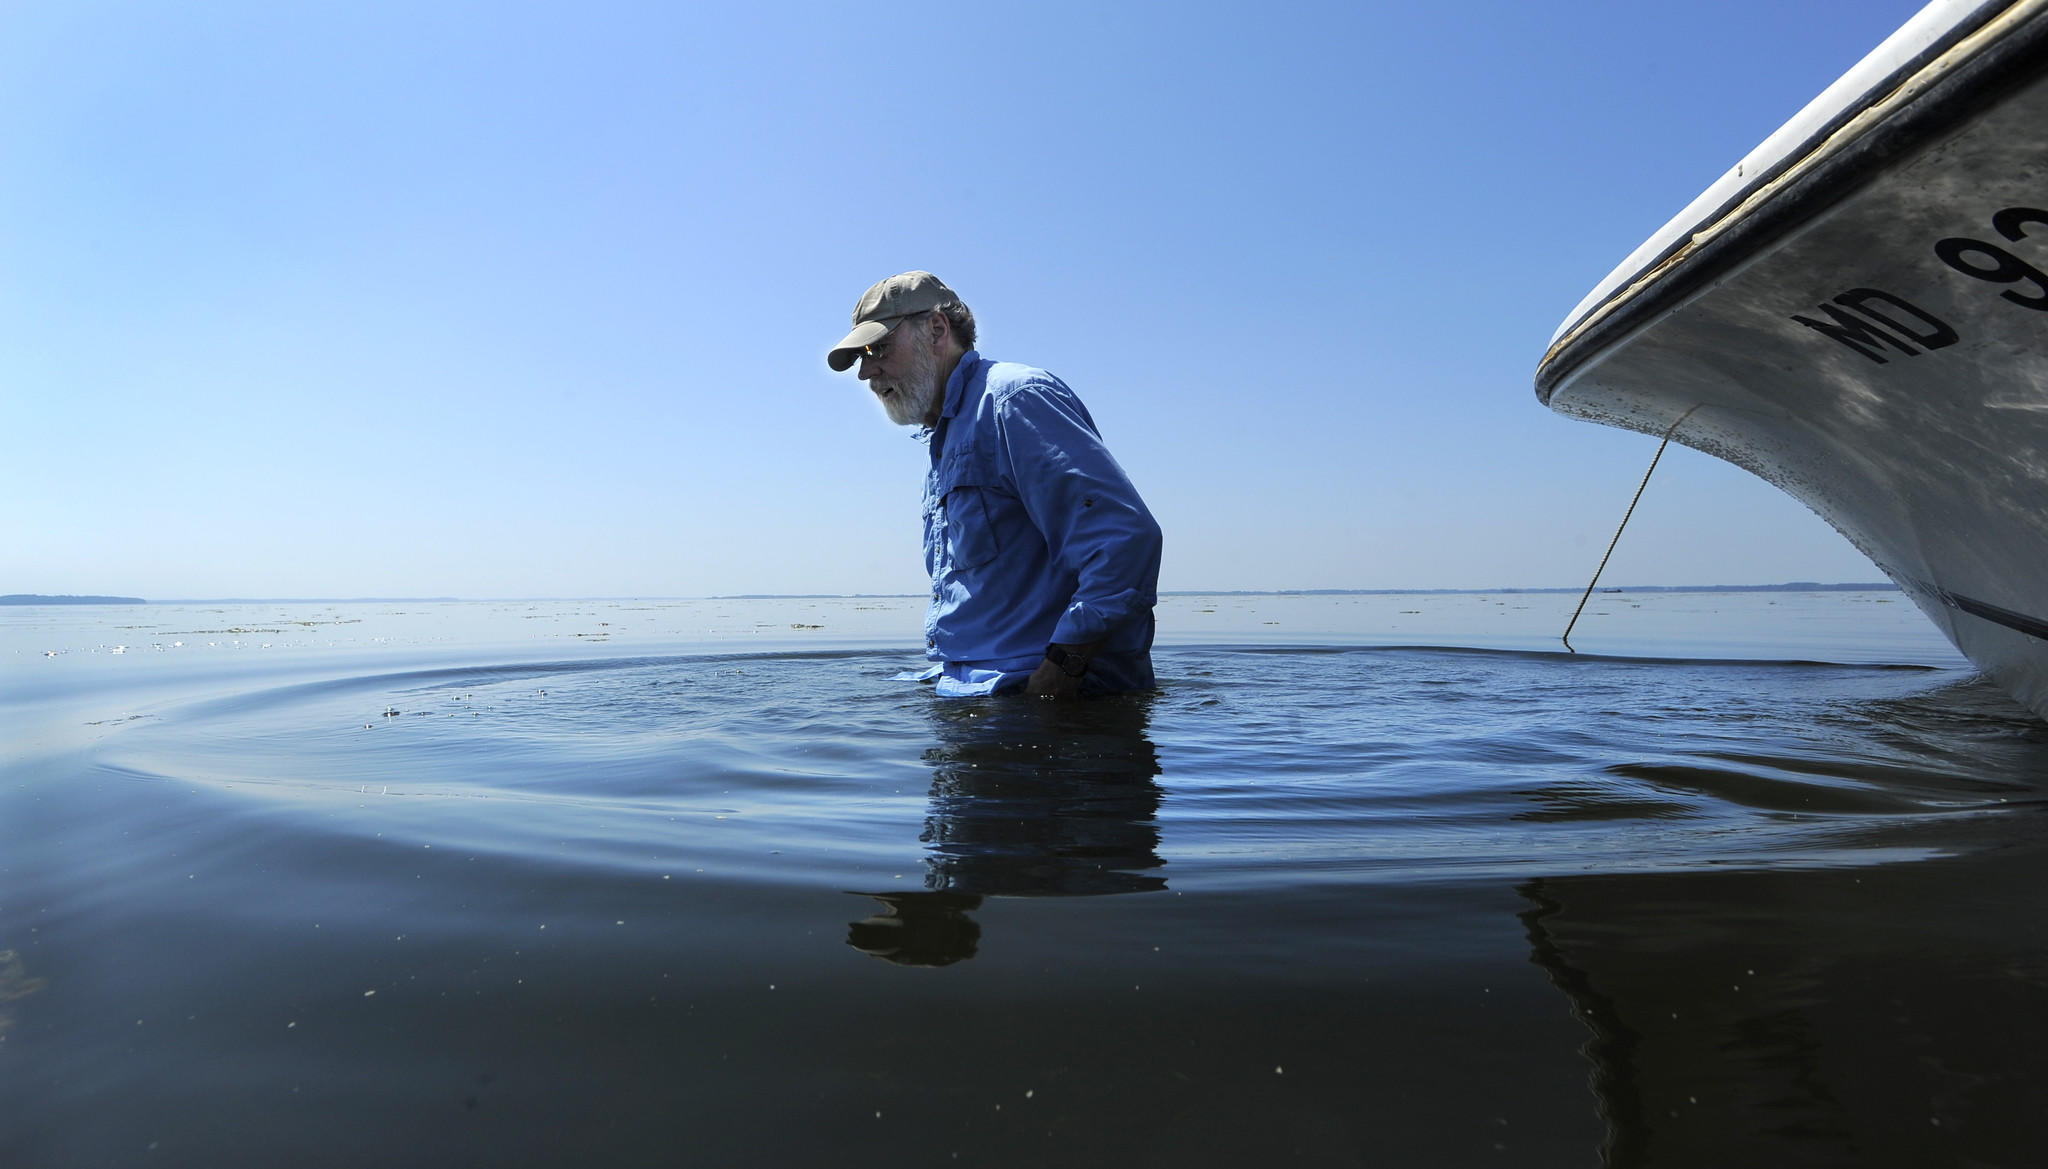 W. Michael Kemp, a professor at The University of Maryland Center of Environmental Science, examines grasses underneath the surface of the water at the Susquehanna Flats.